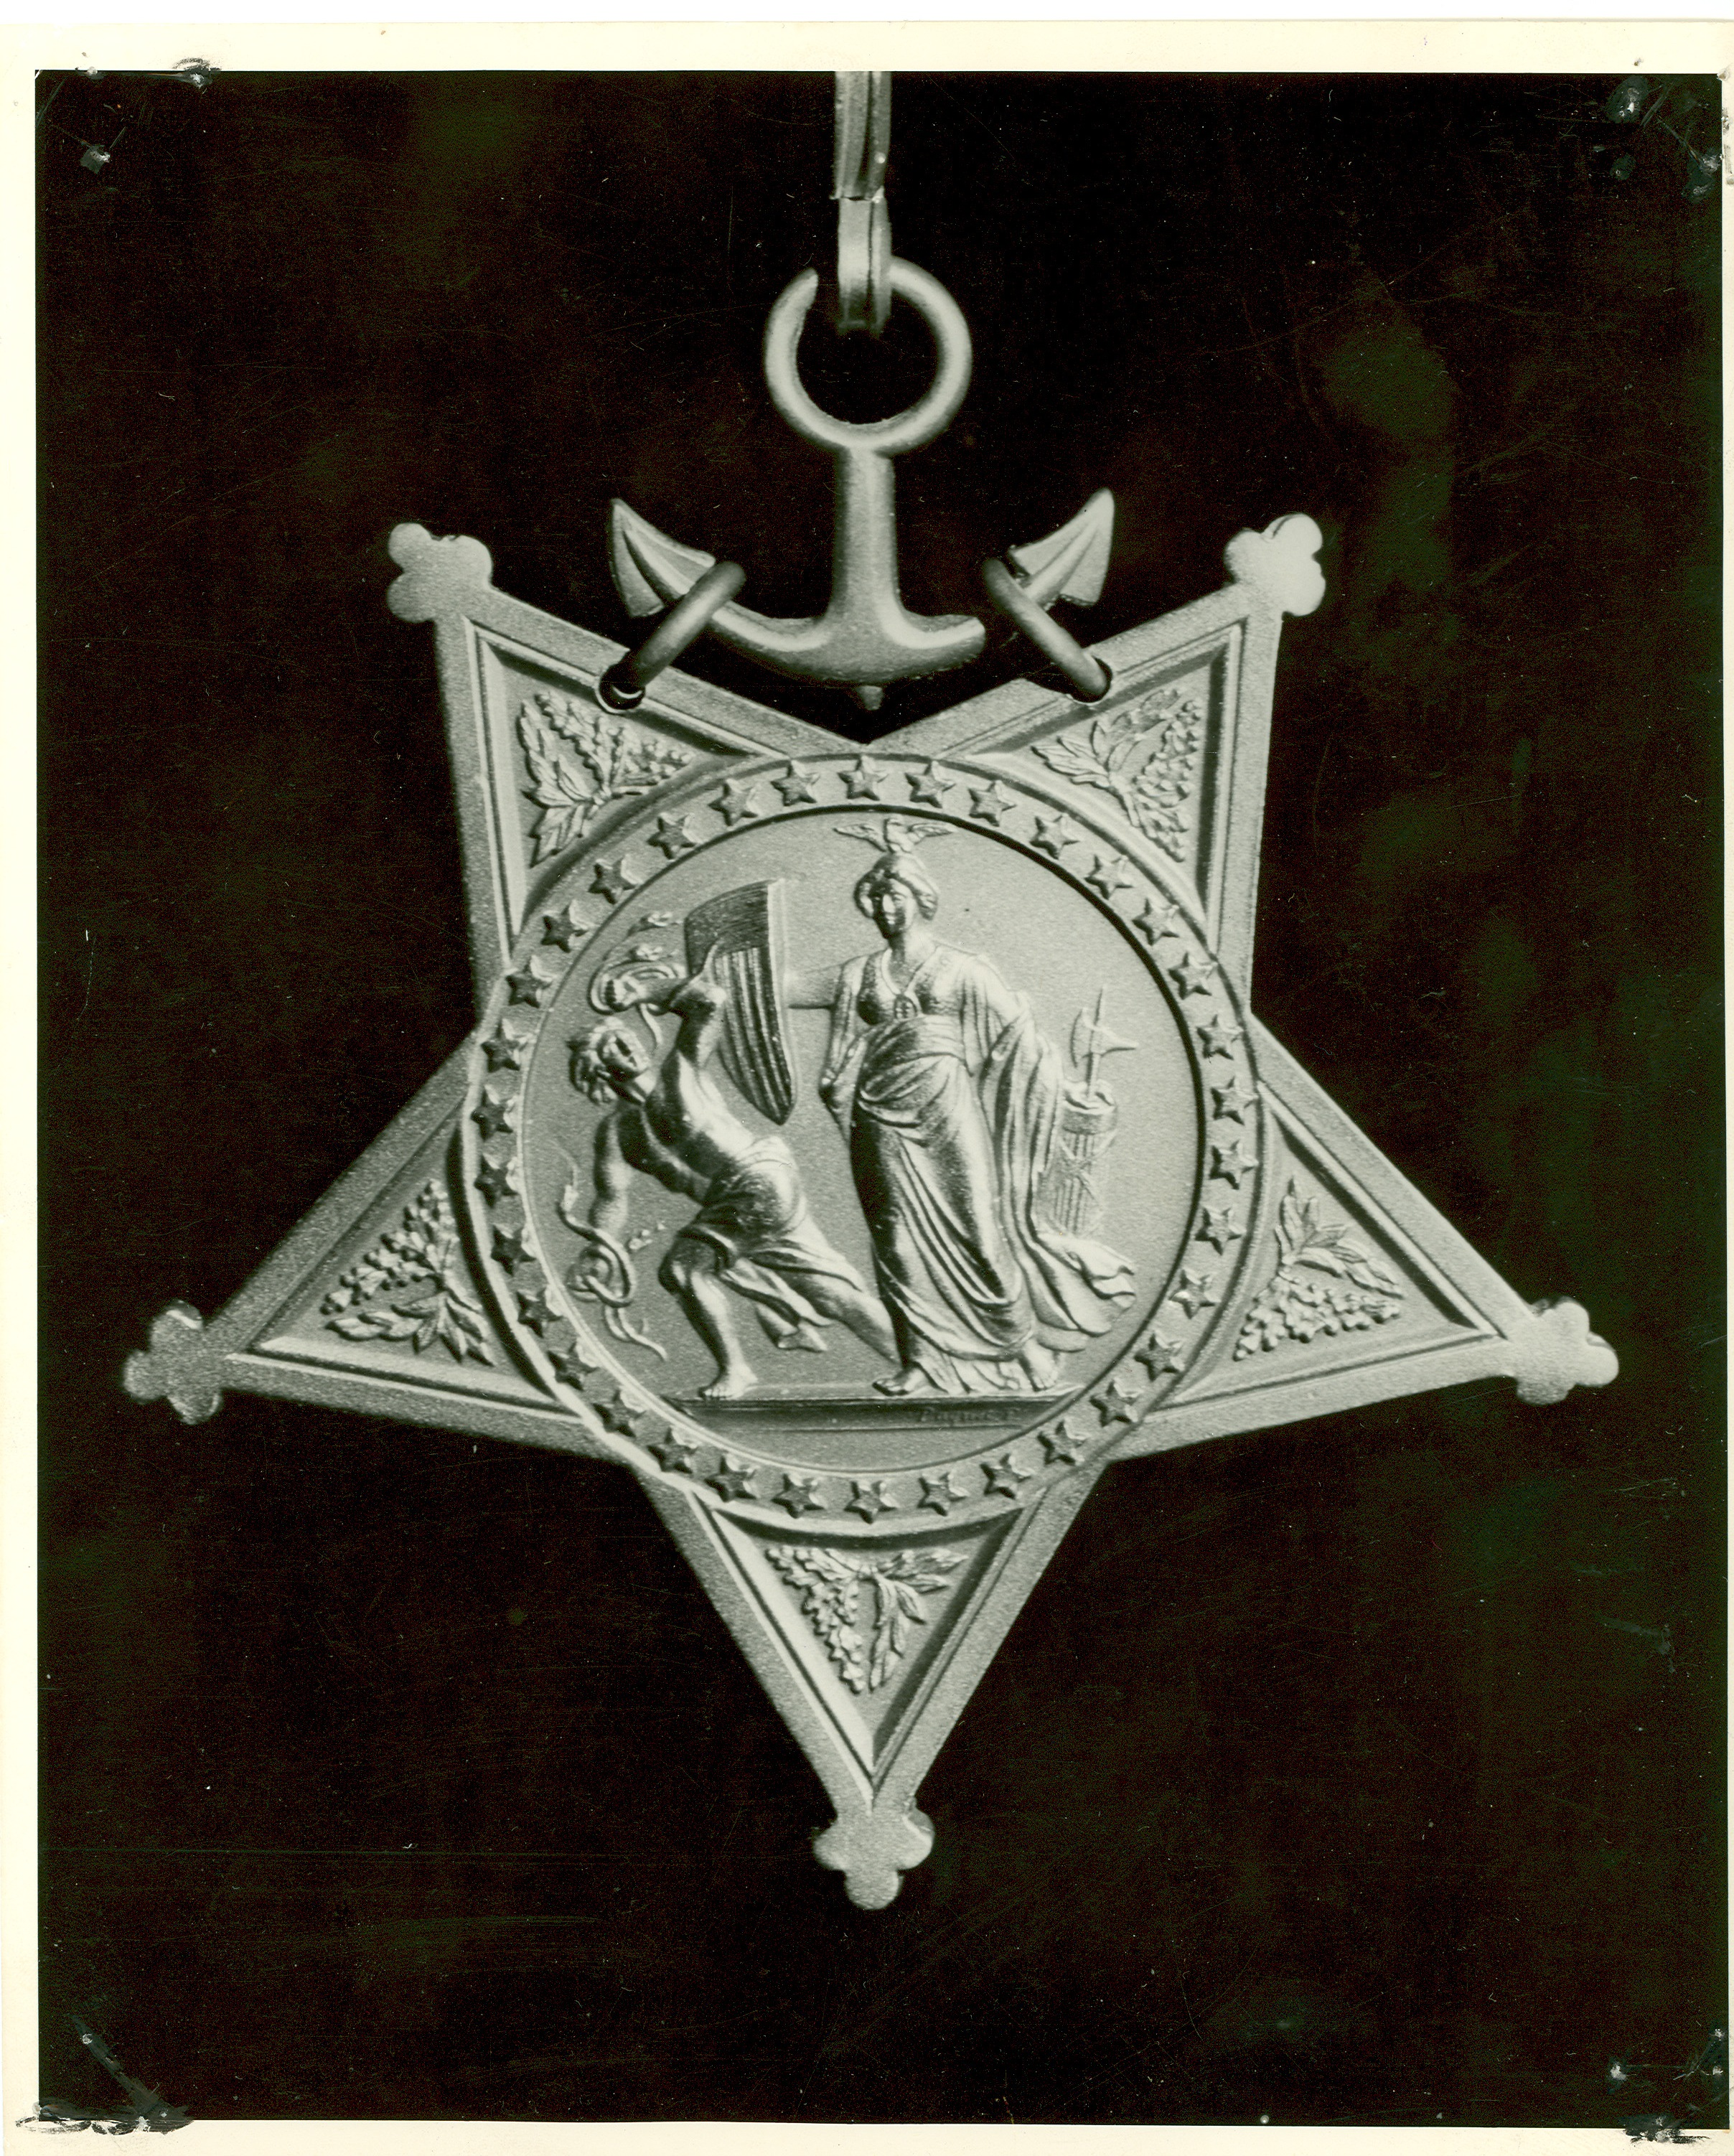 Front view of Munro's Congressional Medal of Honor. This image was found at-